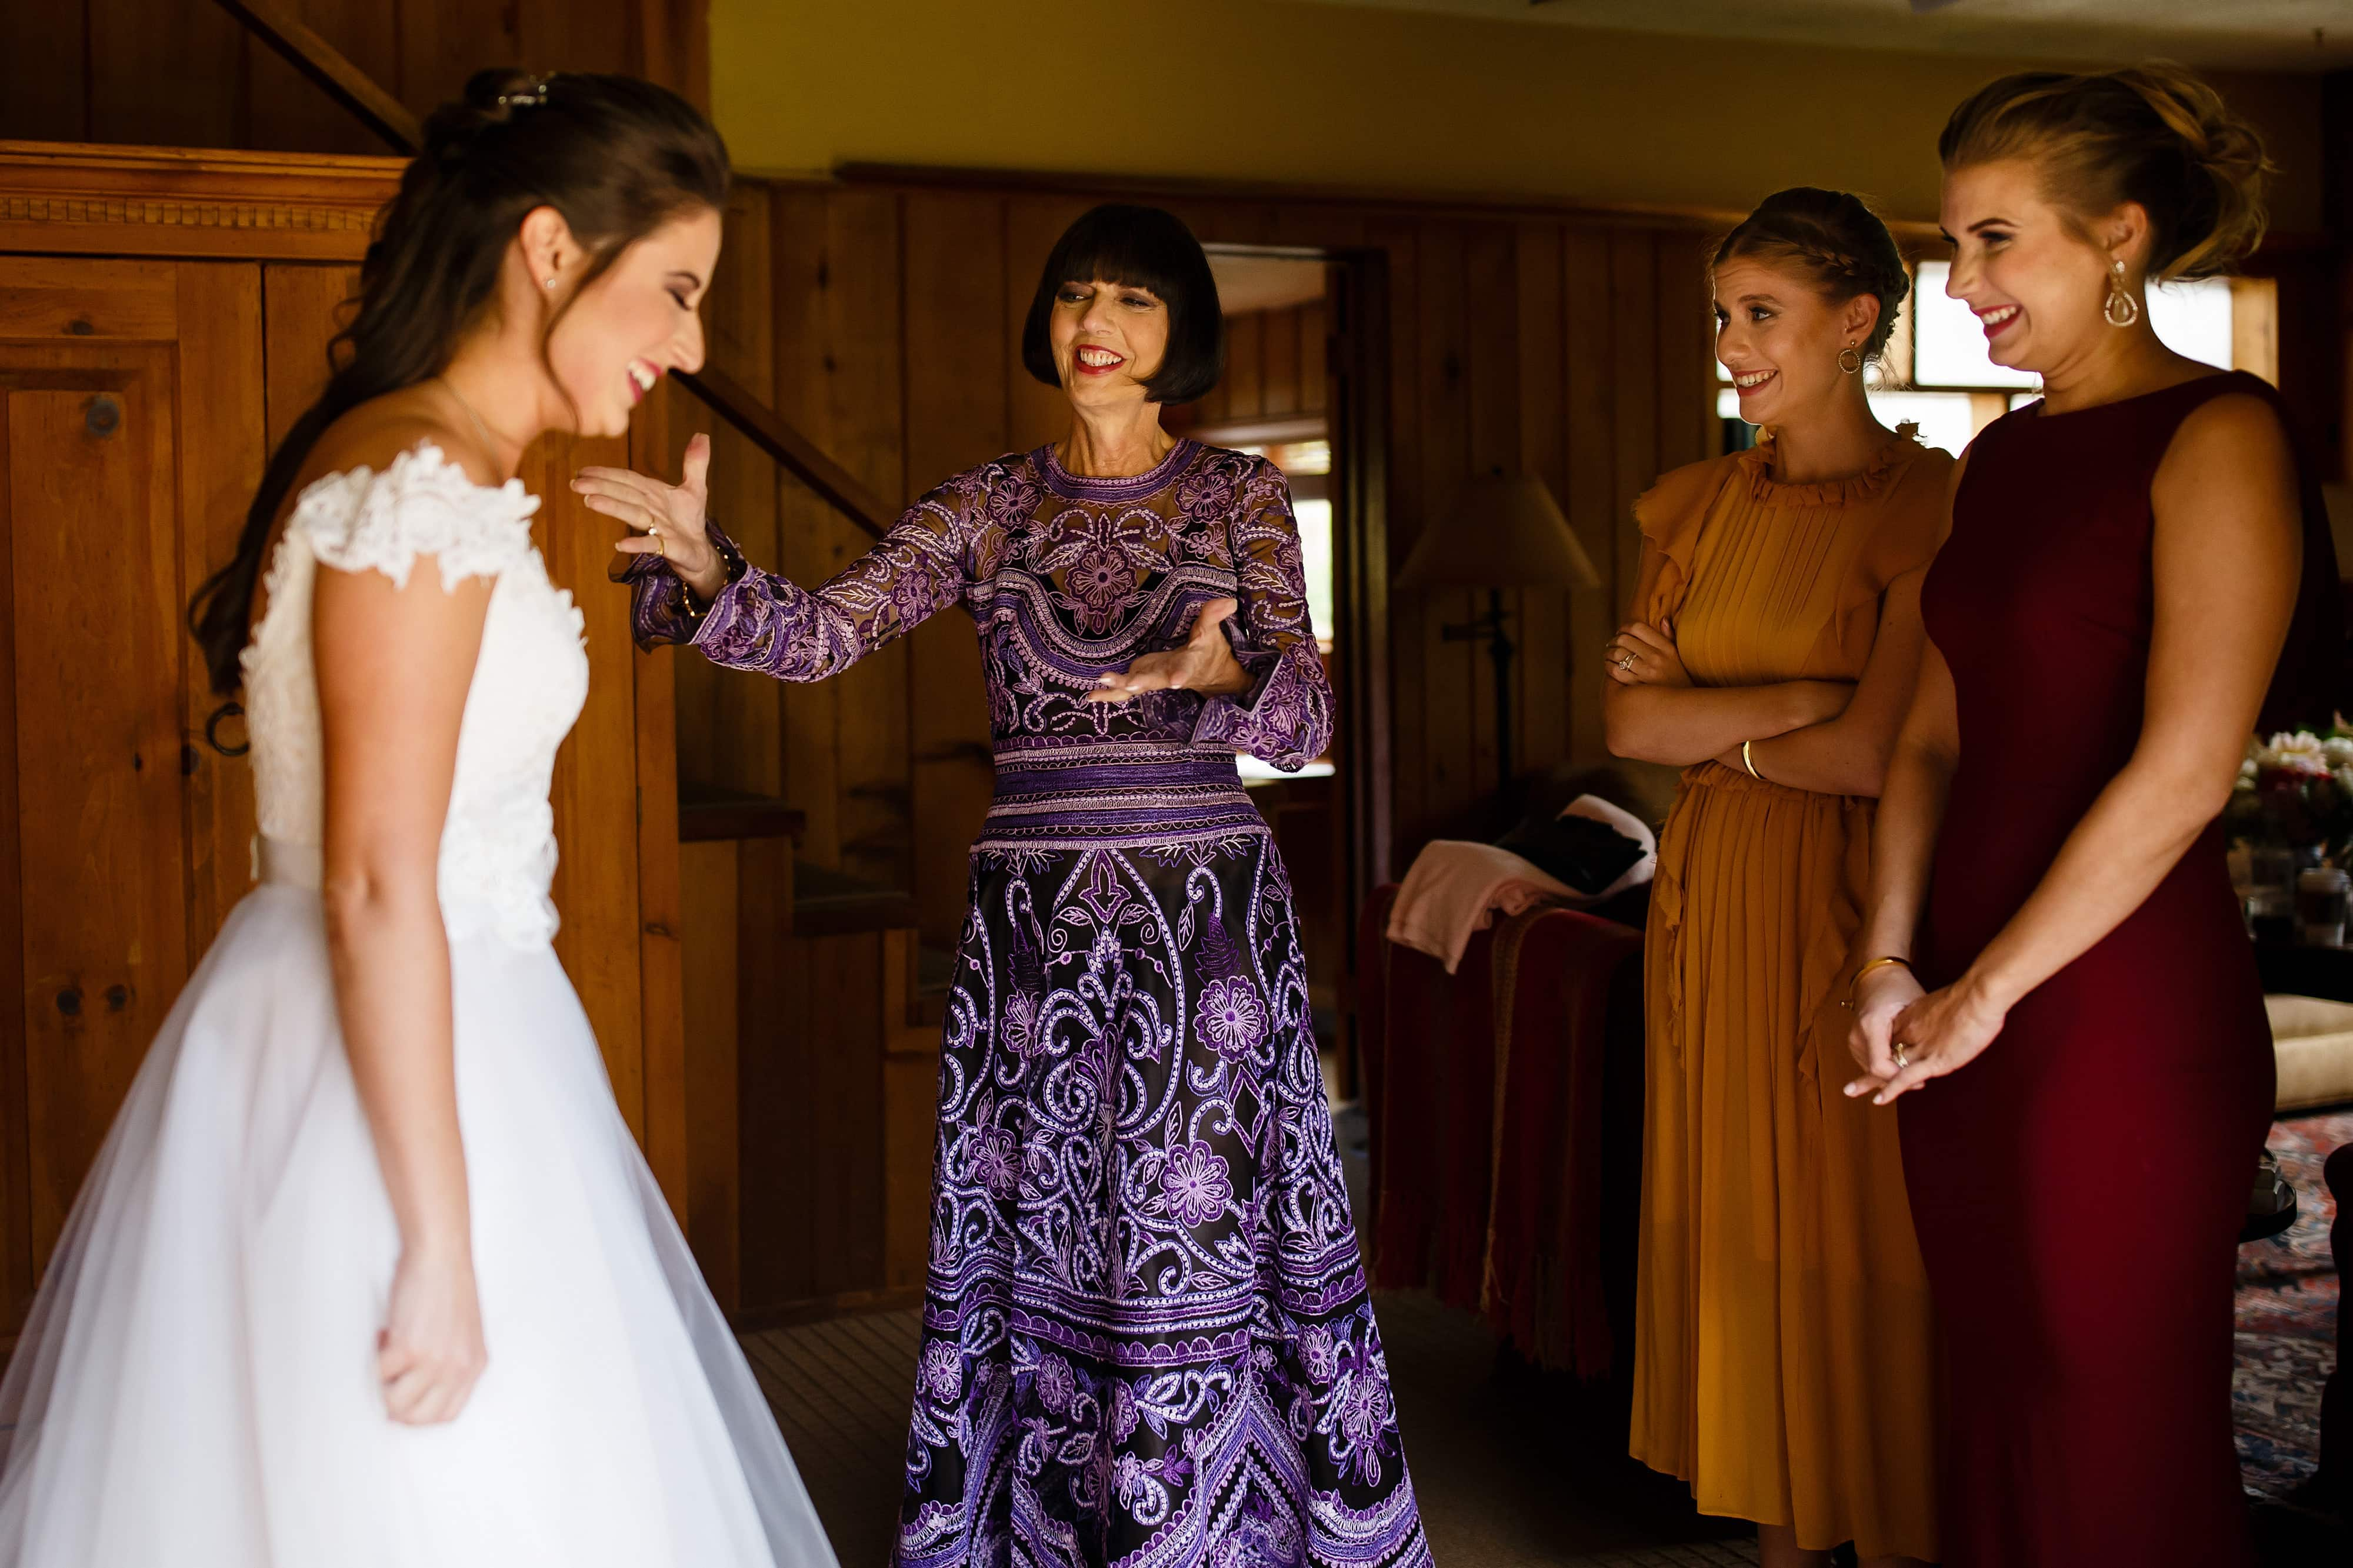 Mallory's mother and sisters react to seing her in her dress before the wedding at Snowmass Cottages